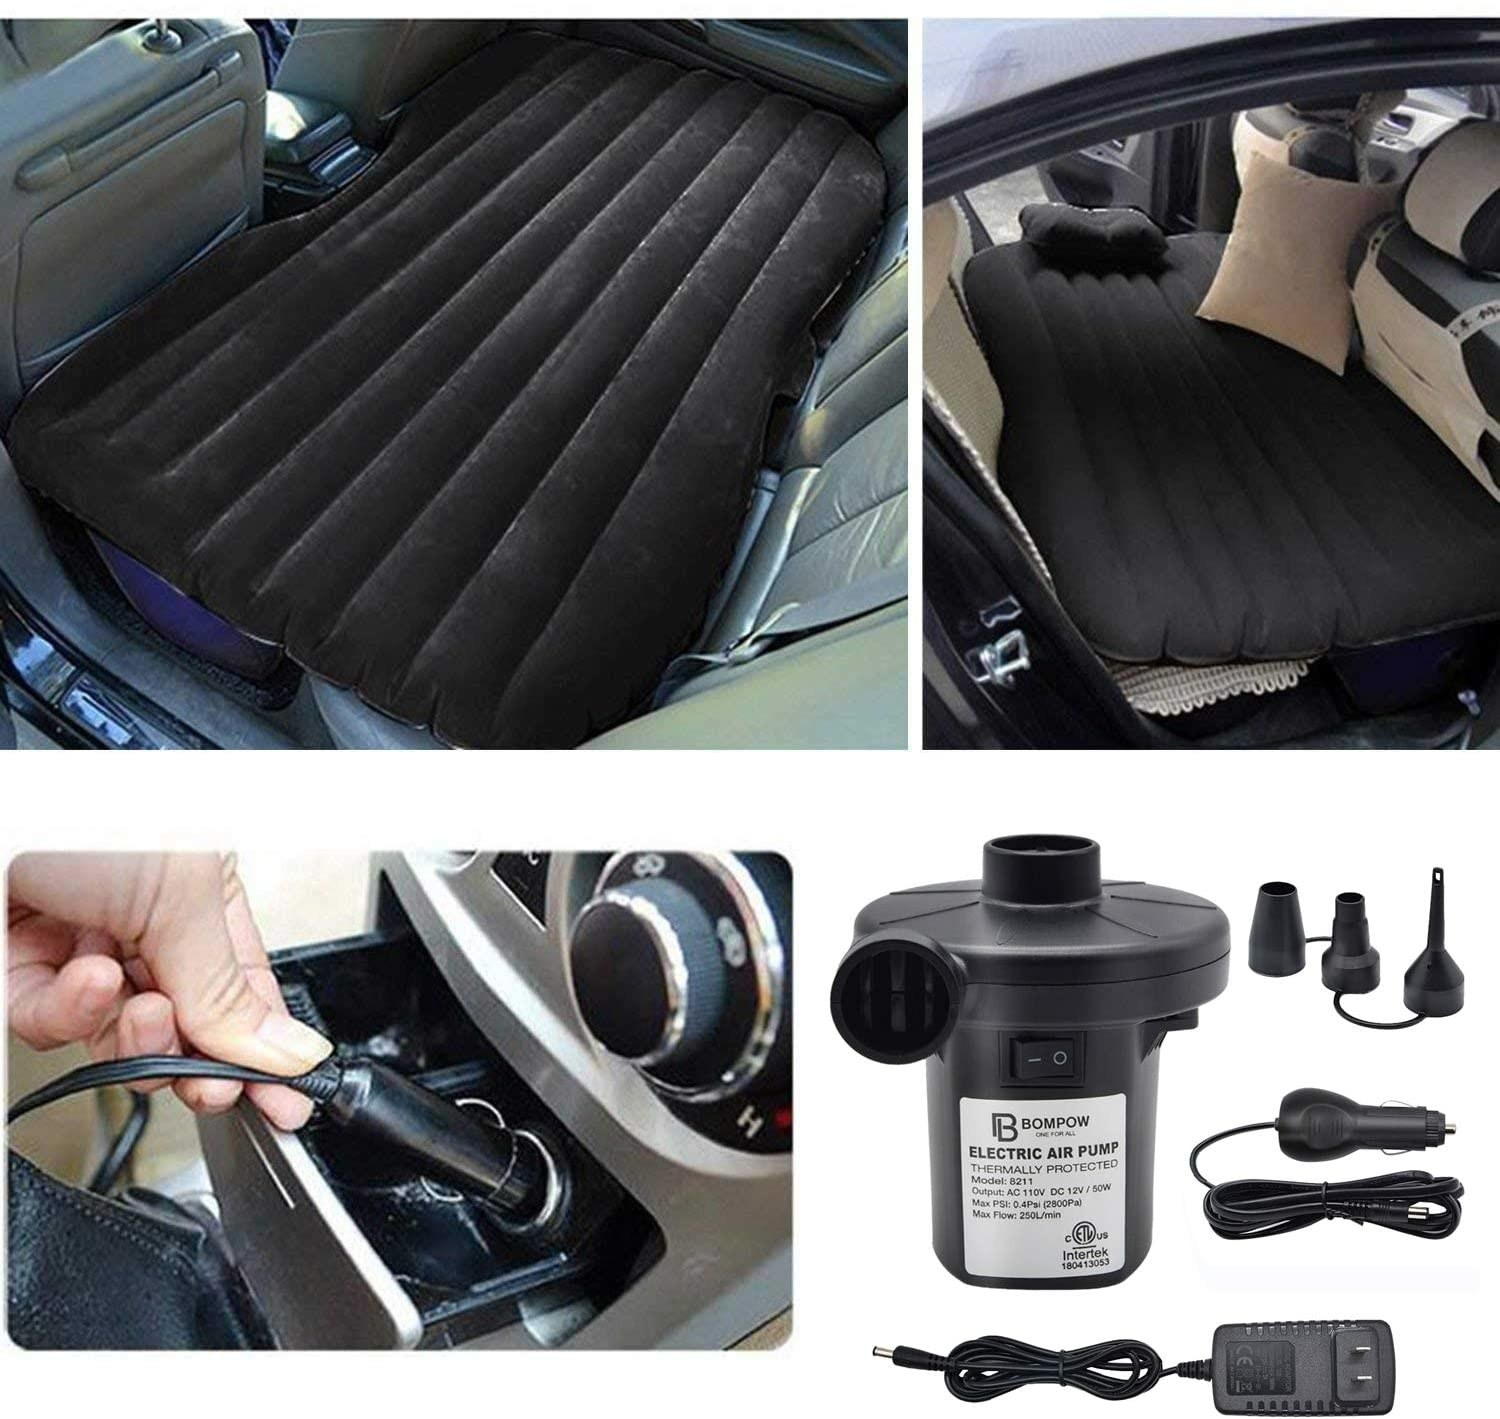 the pump and its attachments and car and regular plugs, and an air mattress inflated in the back of a car